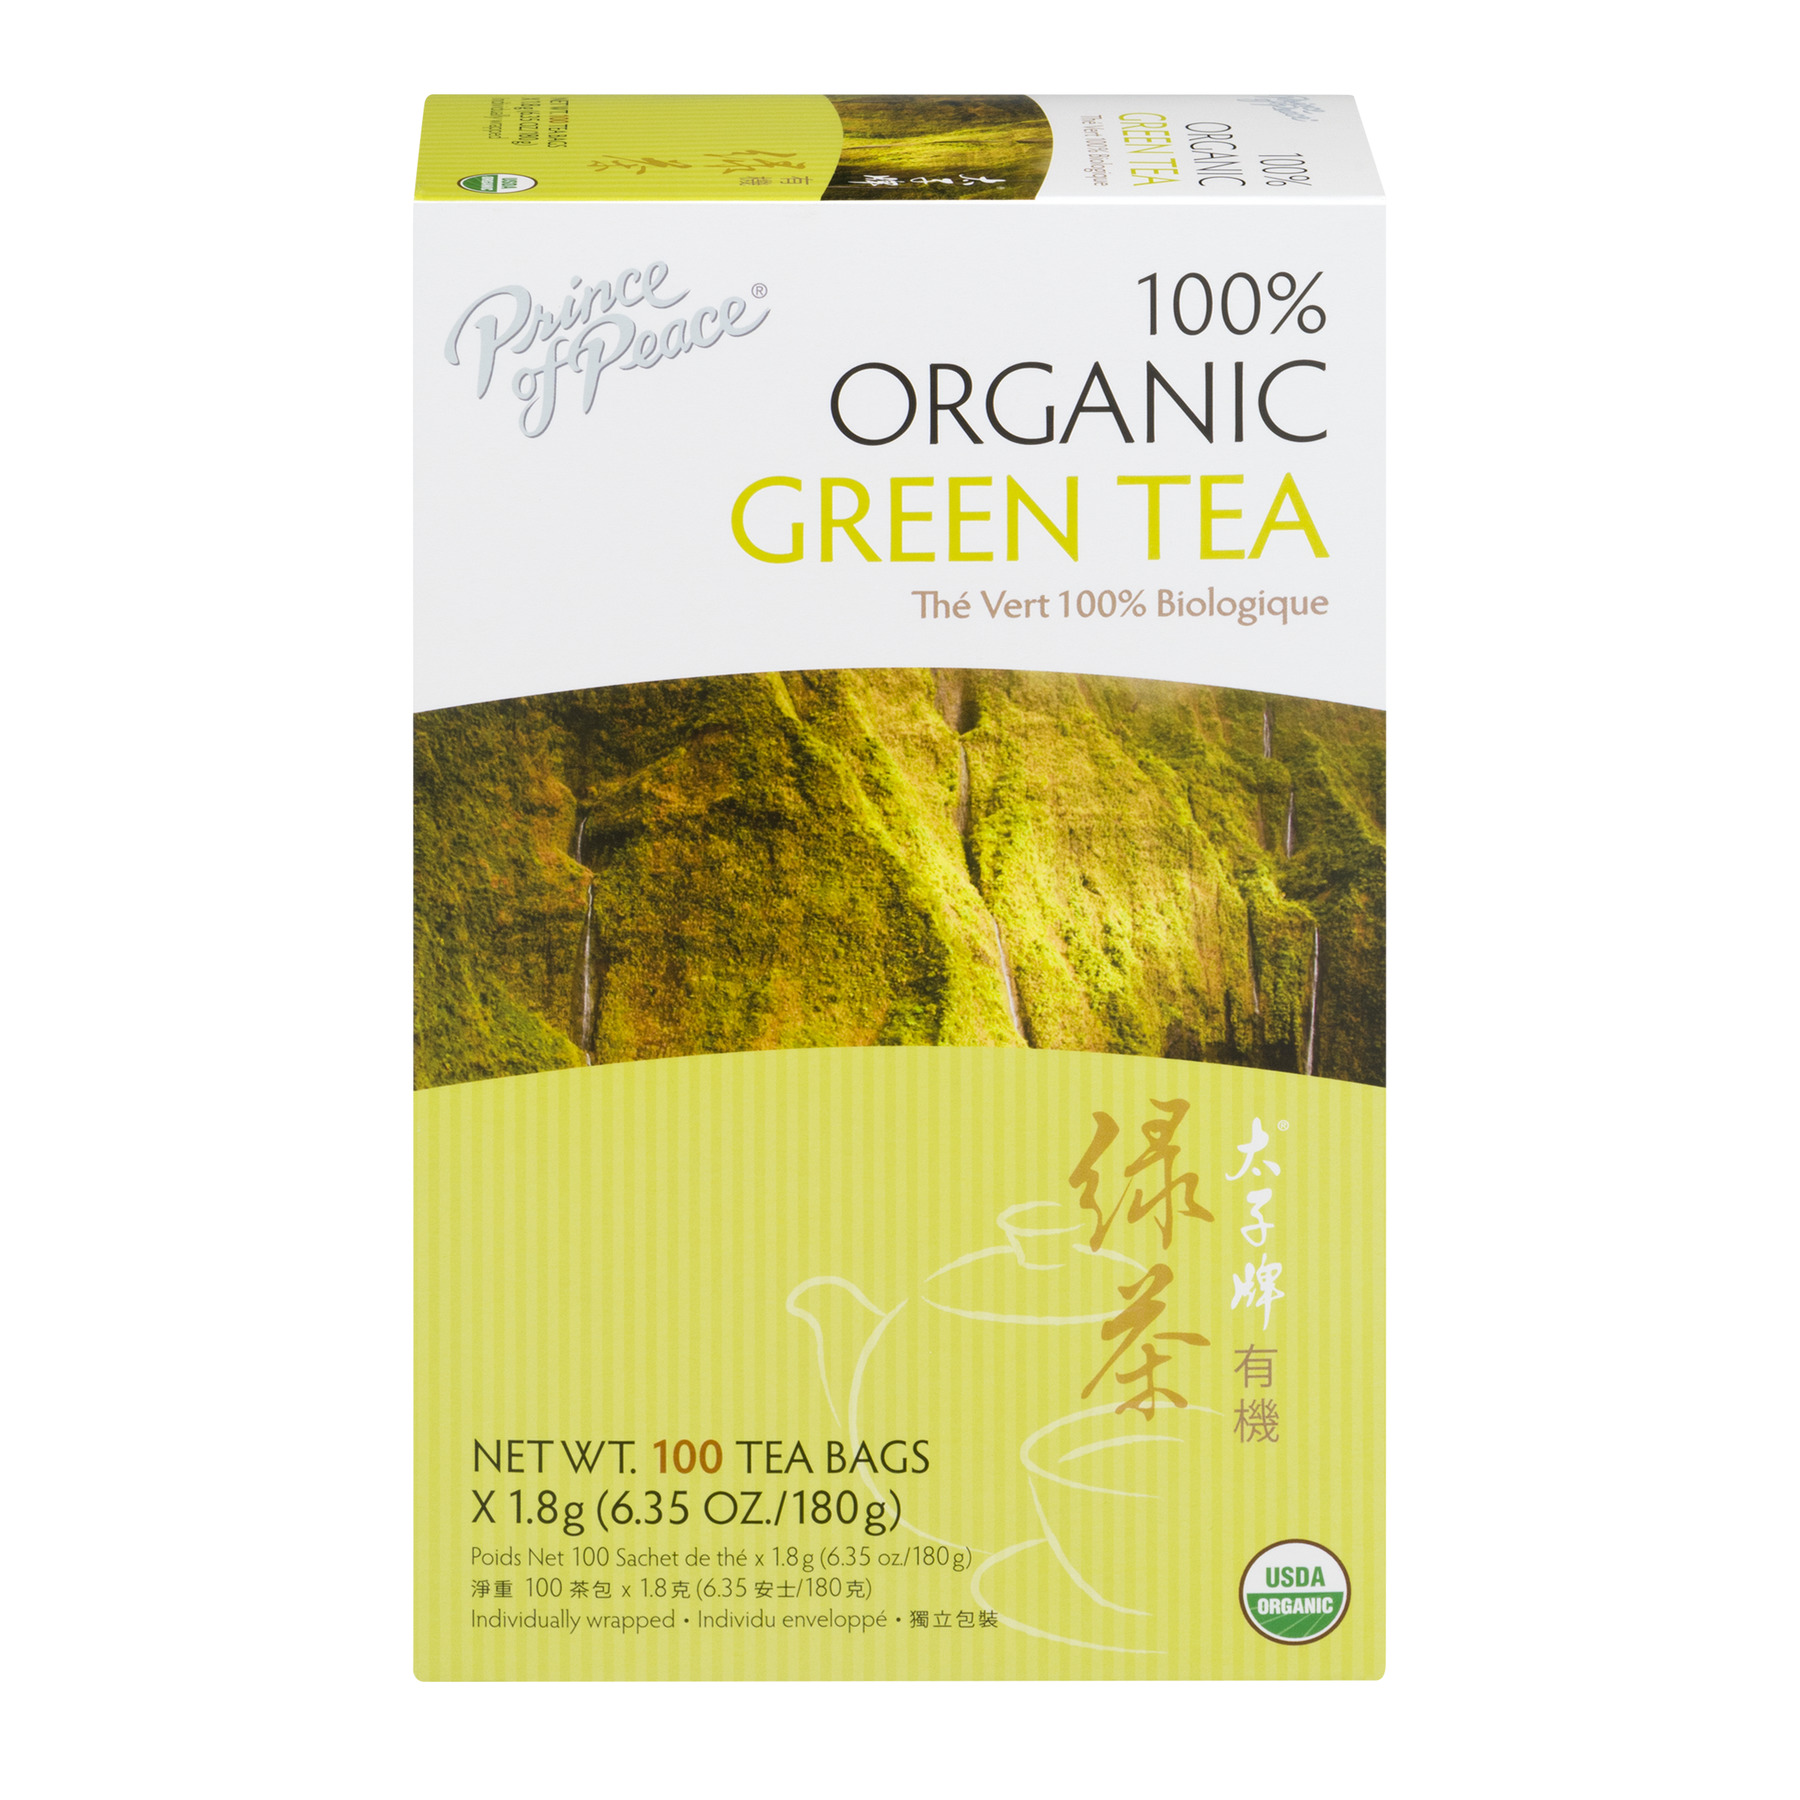 Prince Of Peace 100% Organic Green Tea Bags - 100 CT